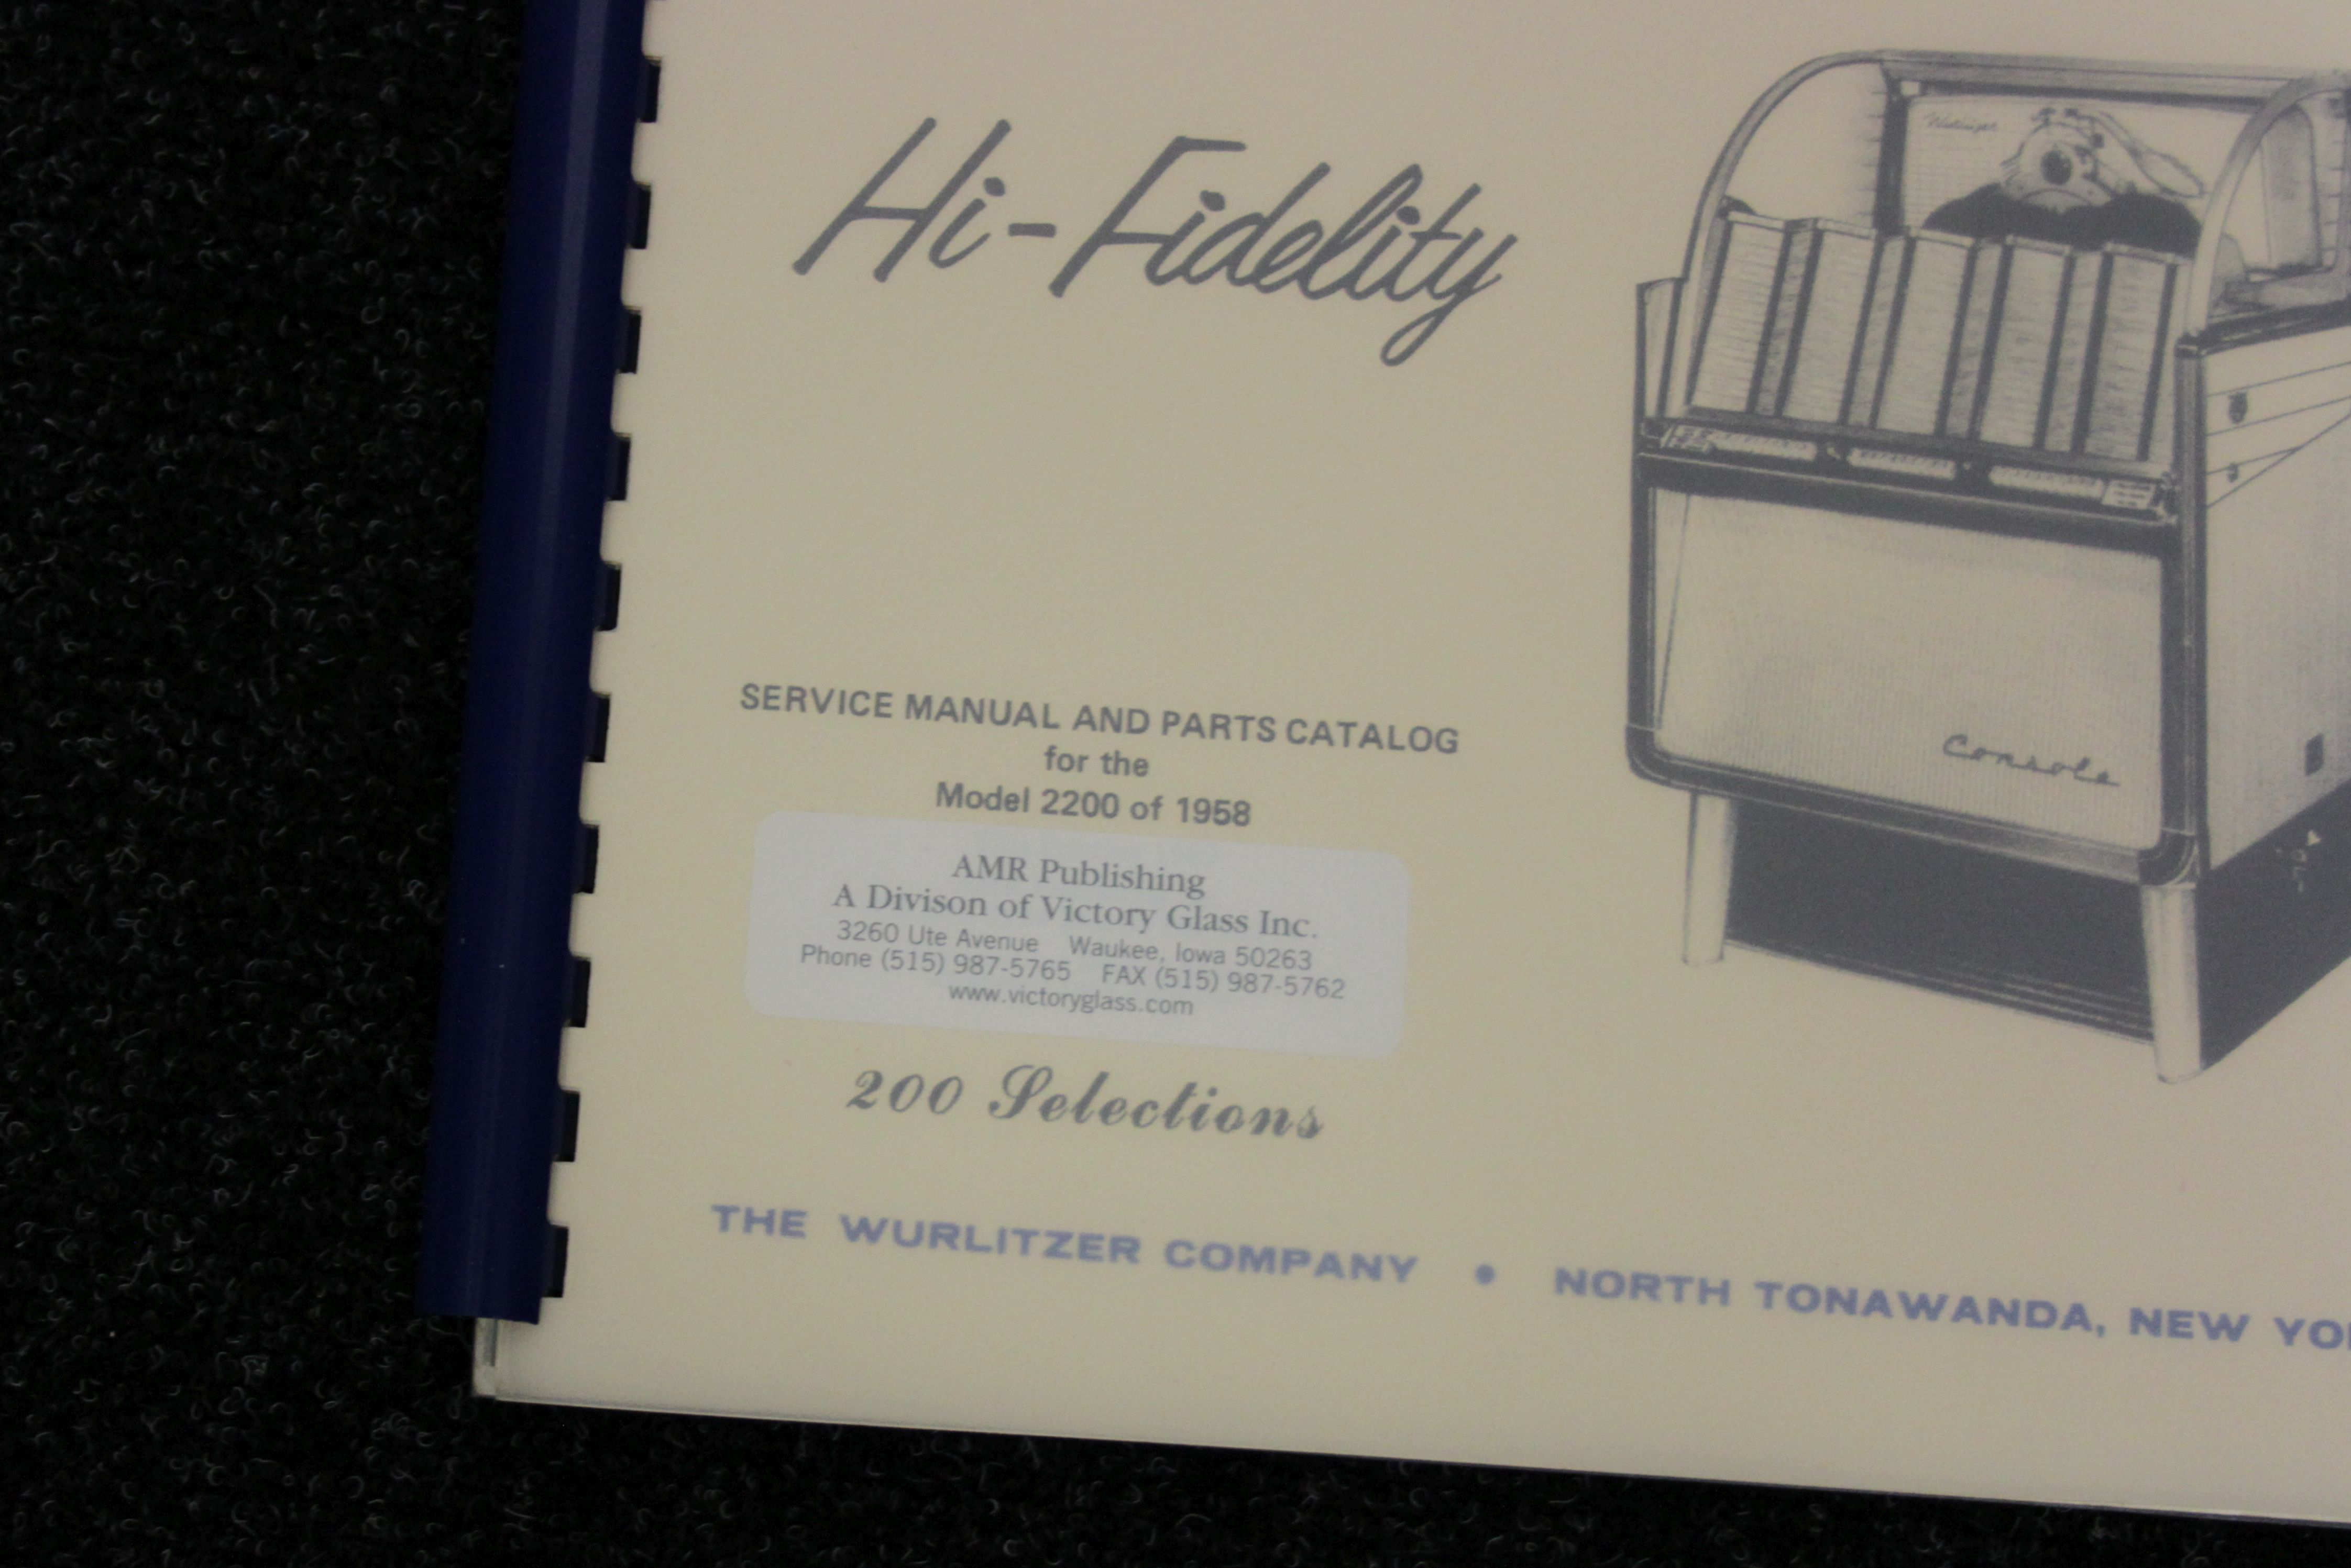 Wurlitzer Service Manual 2200